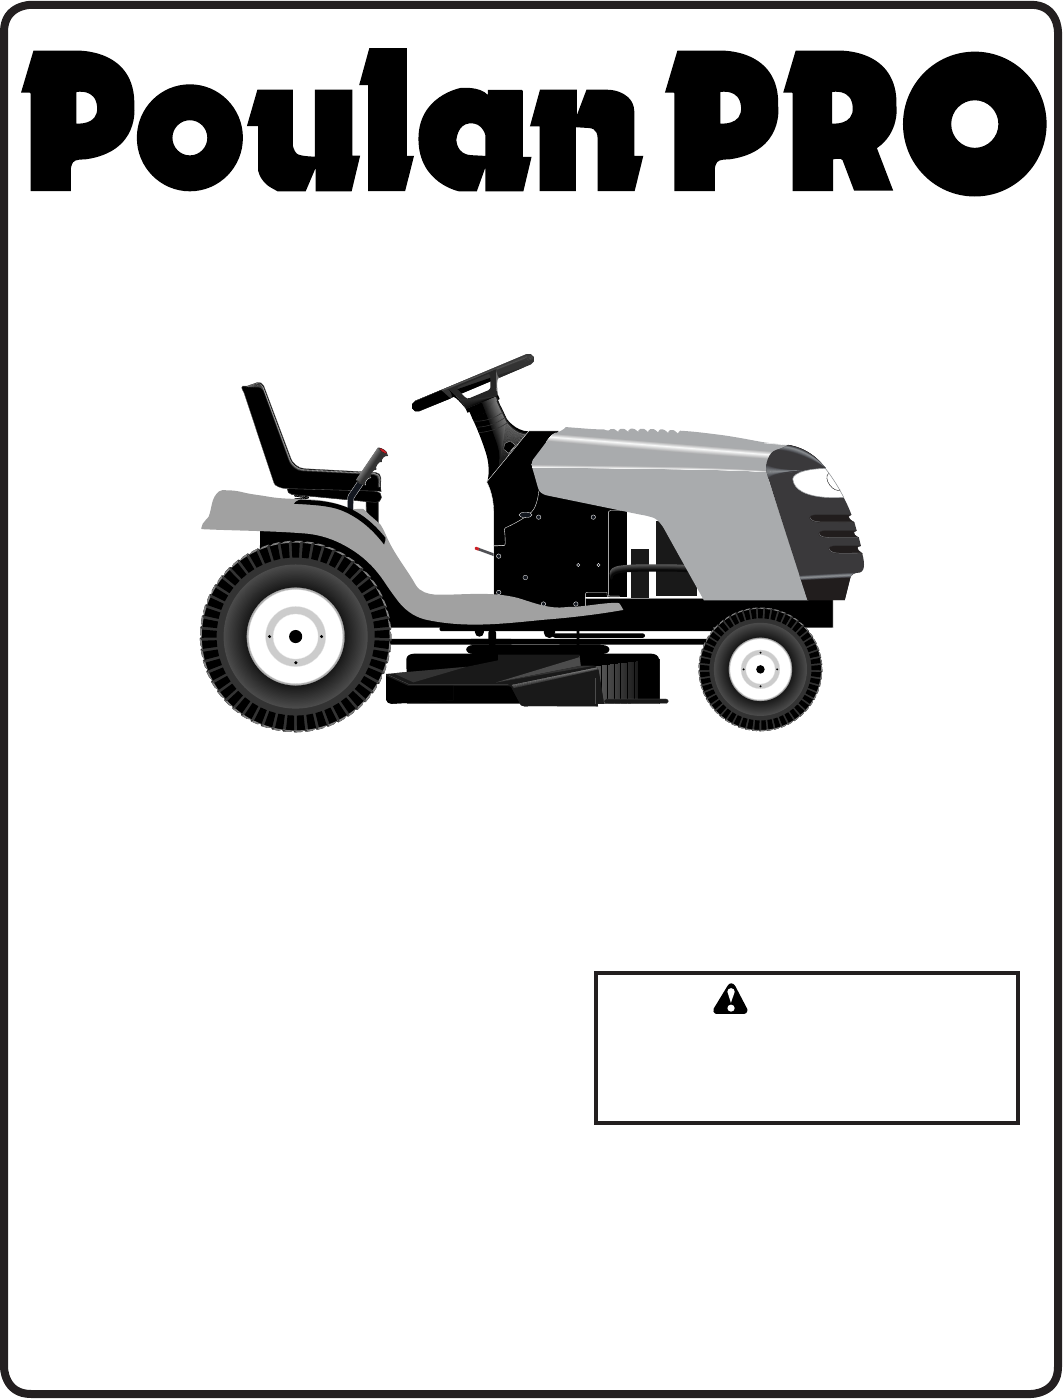 0bf95731 bcd4 4fcf 9f53 c1ae3882ffa9 bg1 poulan lawn mower pb195h42lt user guide manualsonline com poulan pro riding lawn mower wiring diagram at cos-gaming.co